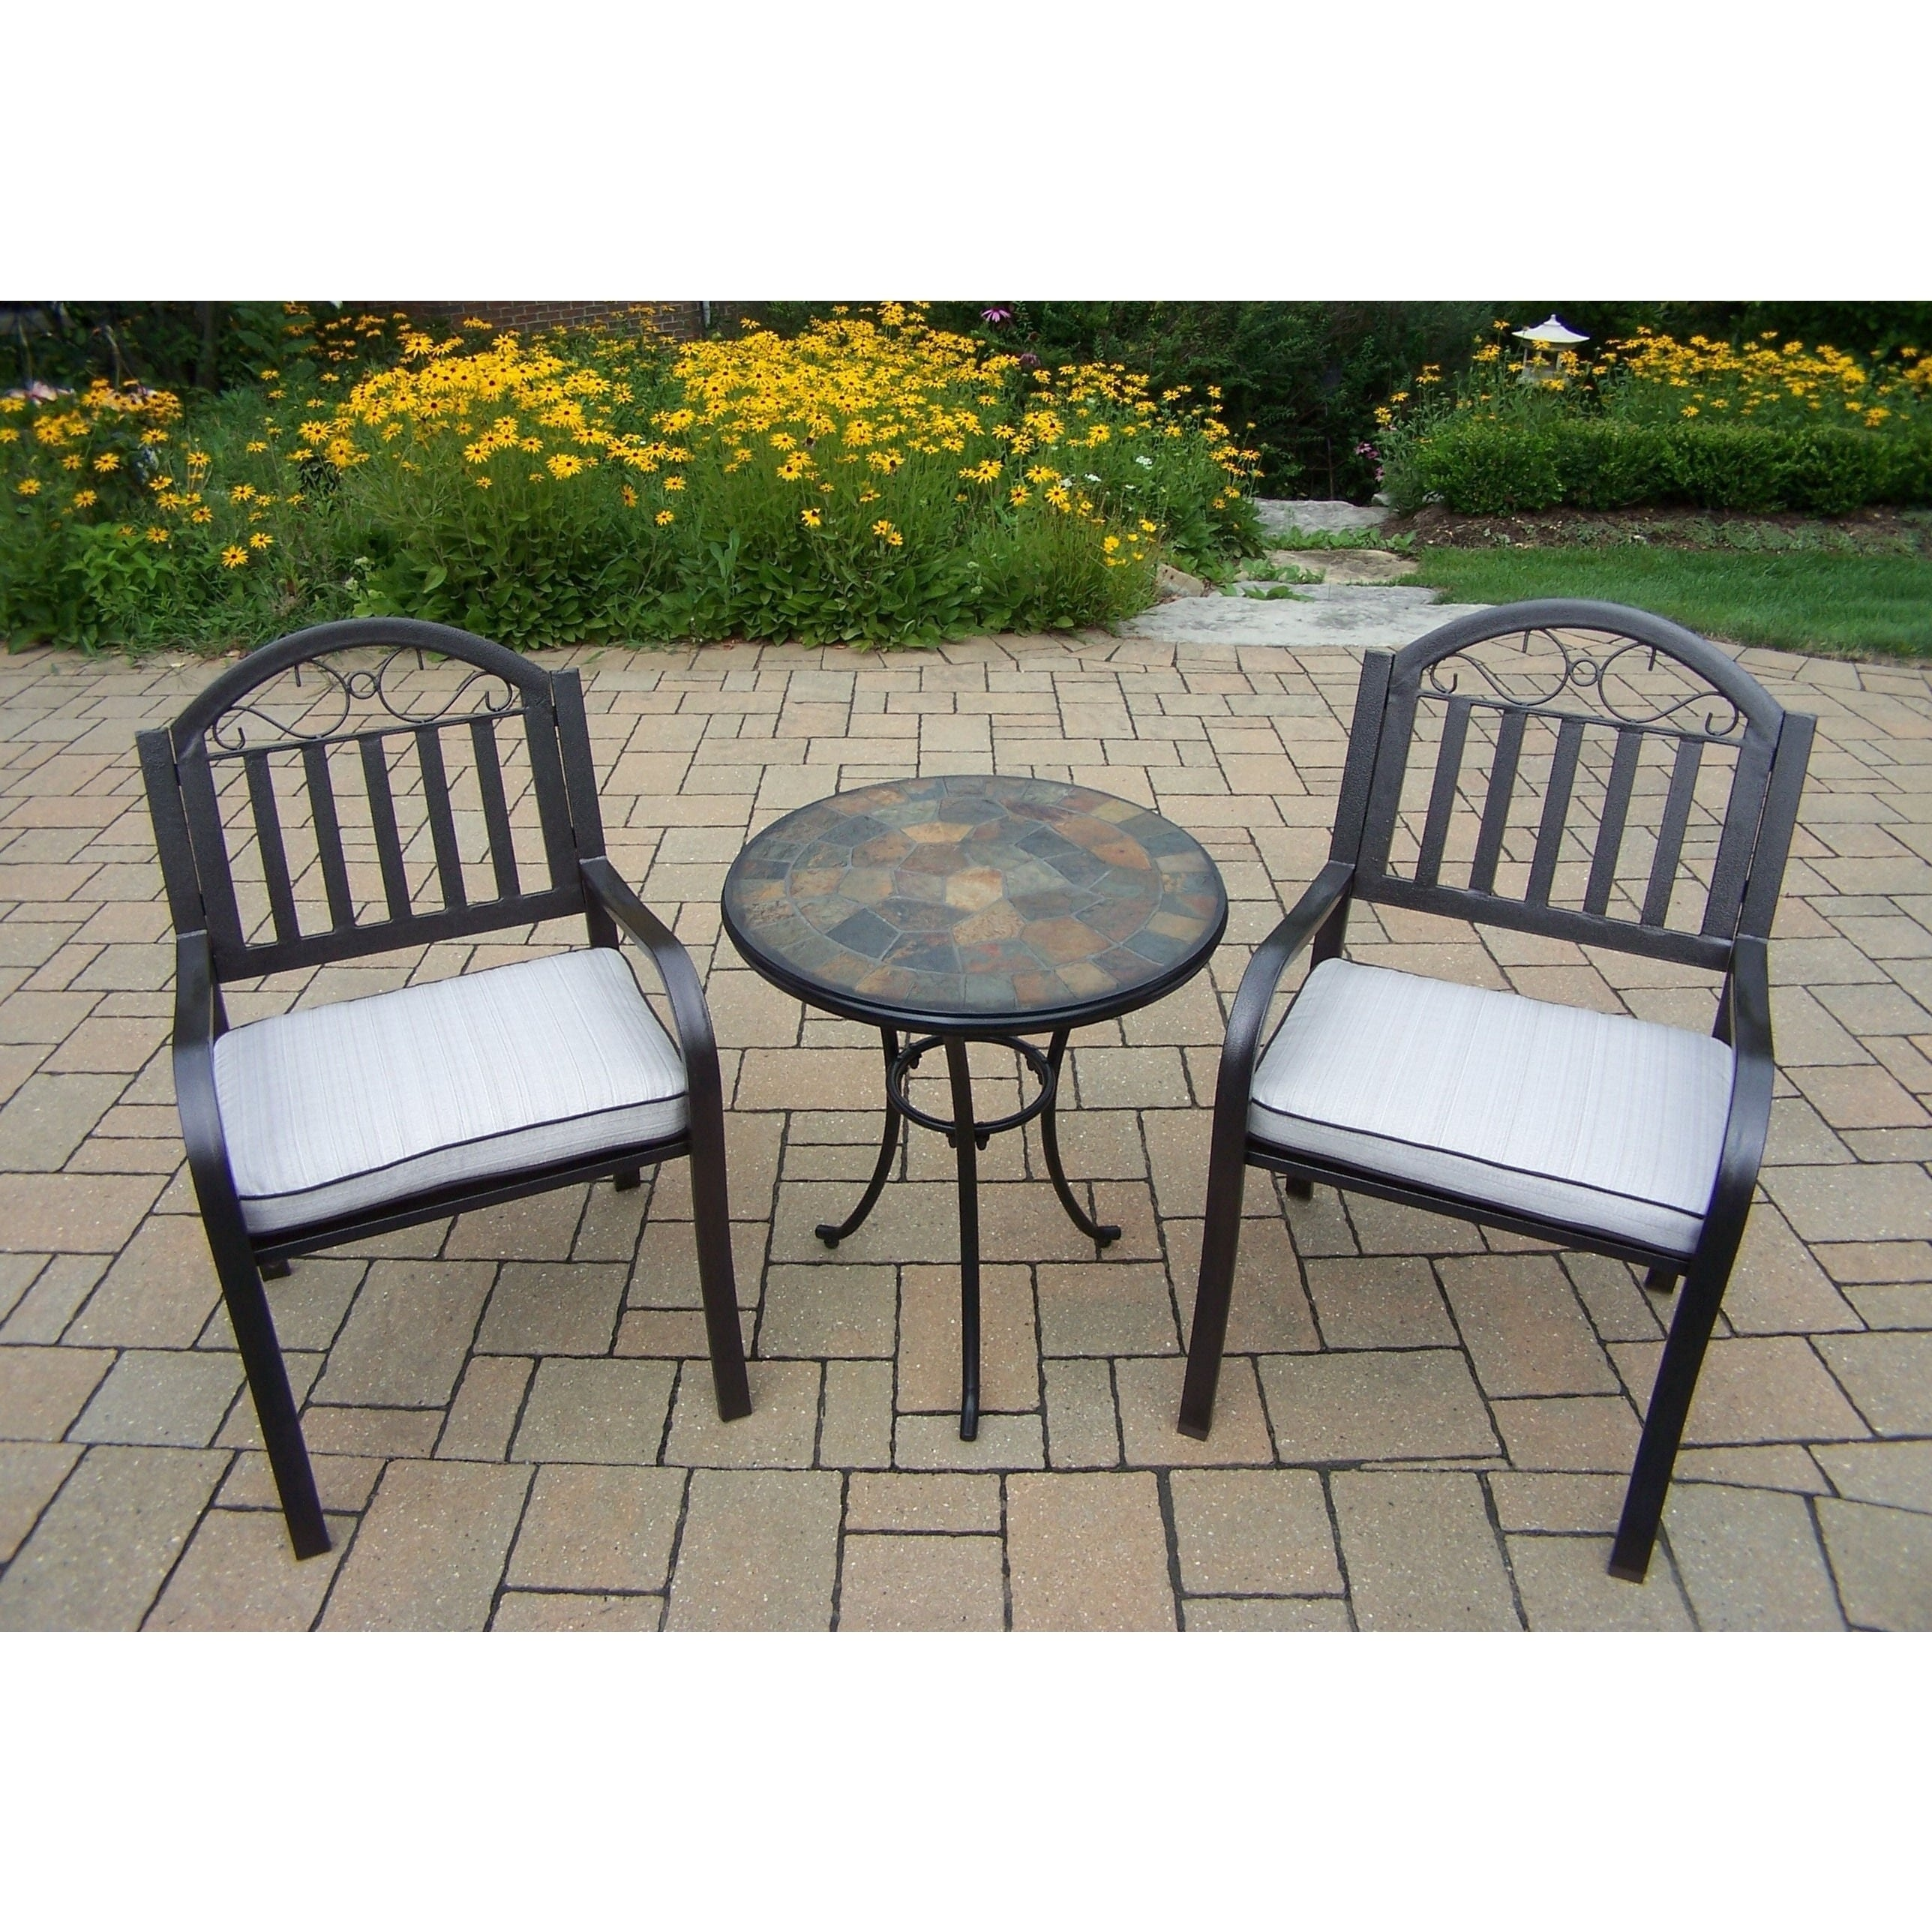 Oakland Corporation Hometown 3 Pc Stone Bistro Set with 2...